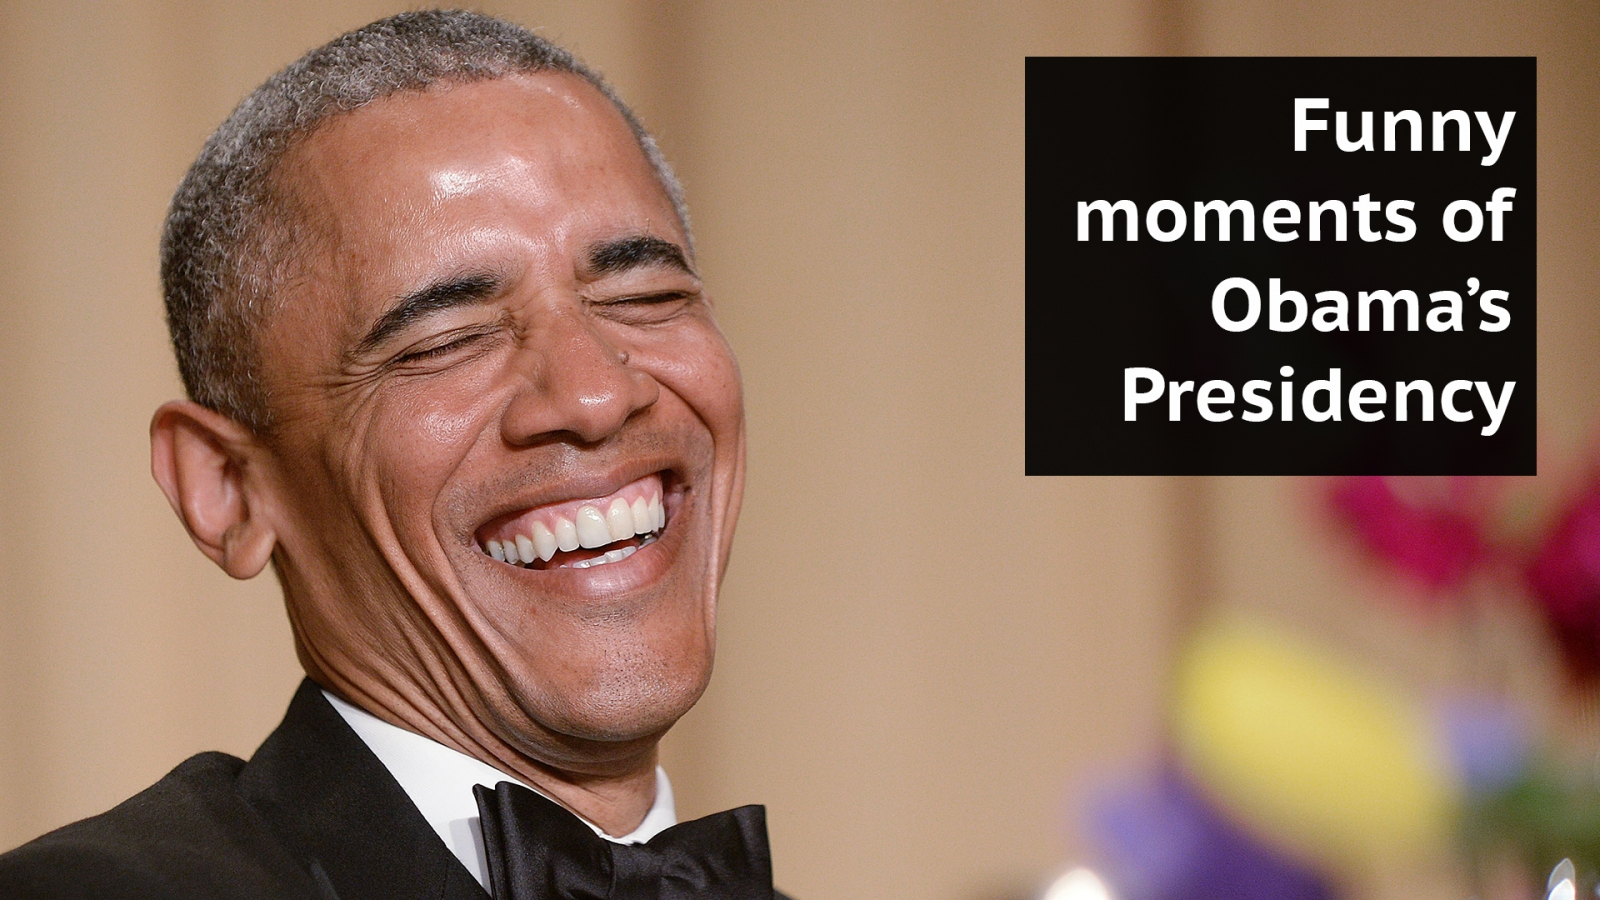 Top 10 Funniest Obama Moments